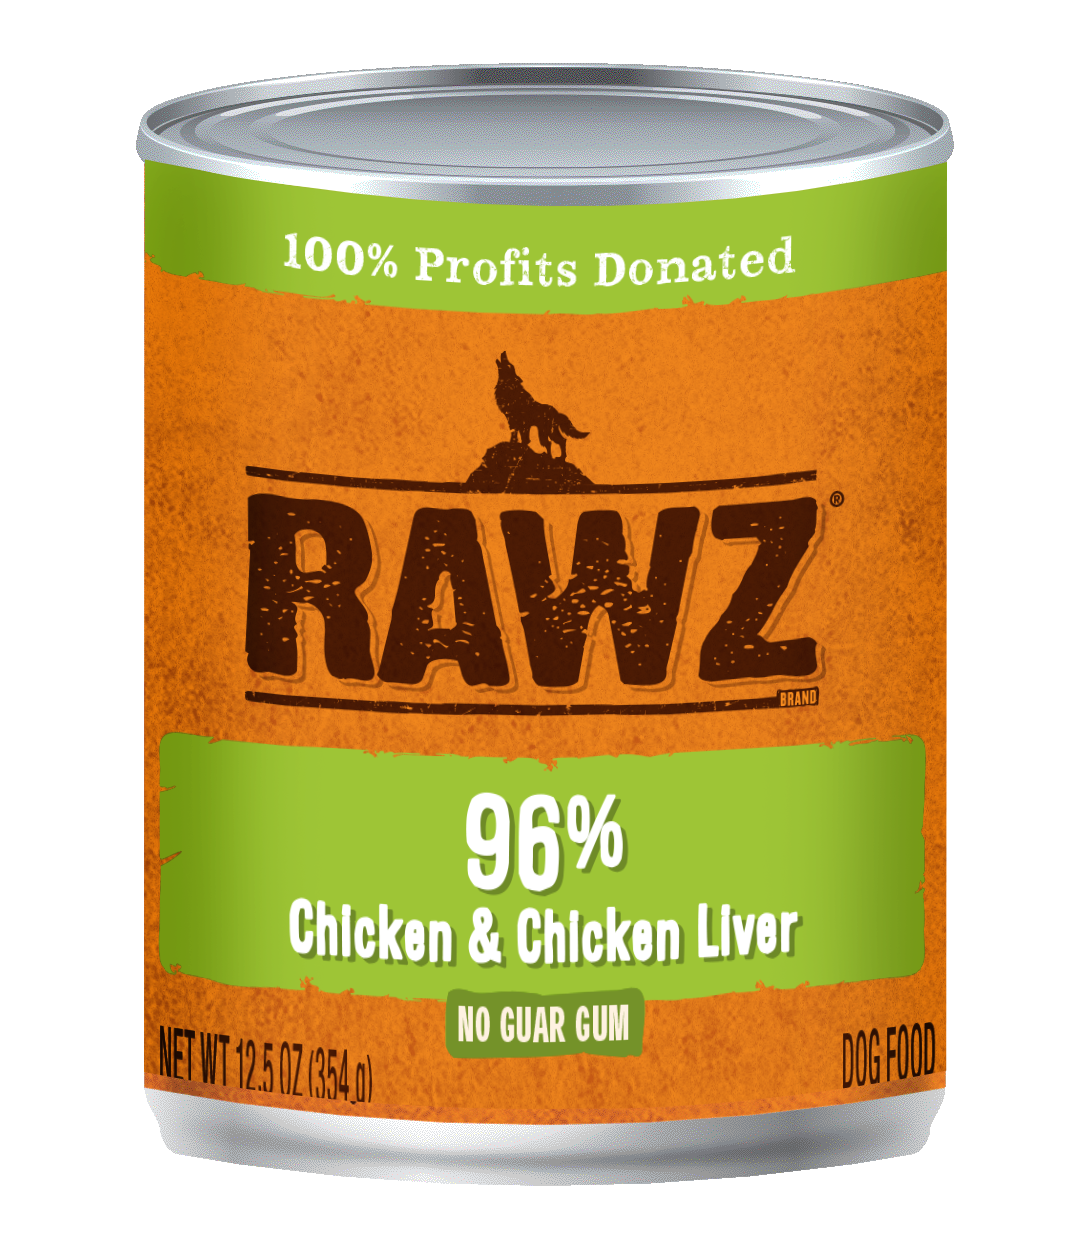 Chicken & Chicken Liver Recipe 96% Meat Gum Free Pâté Cans